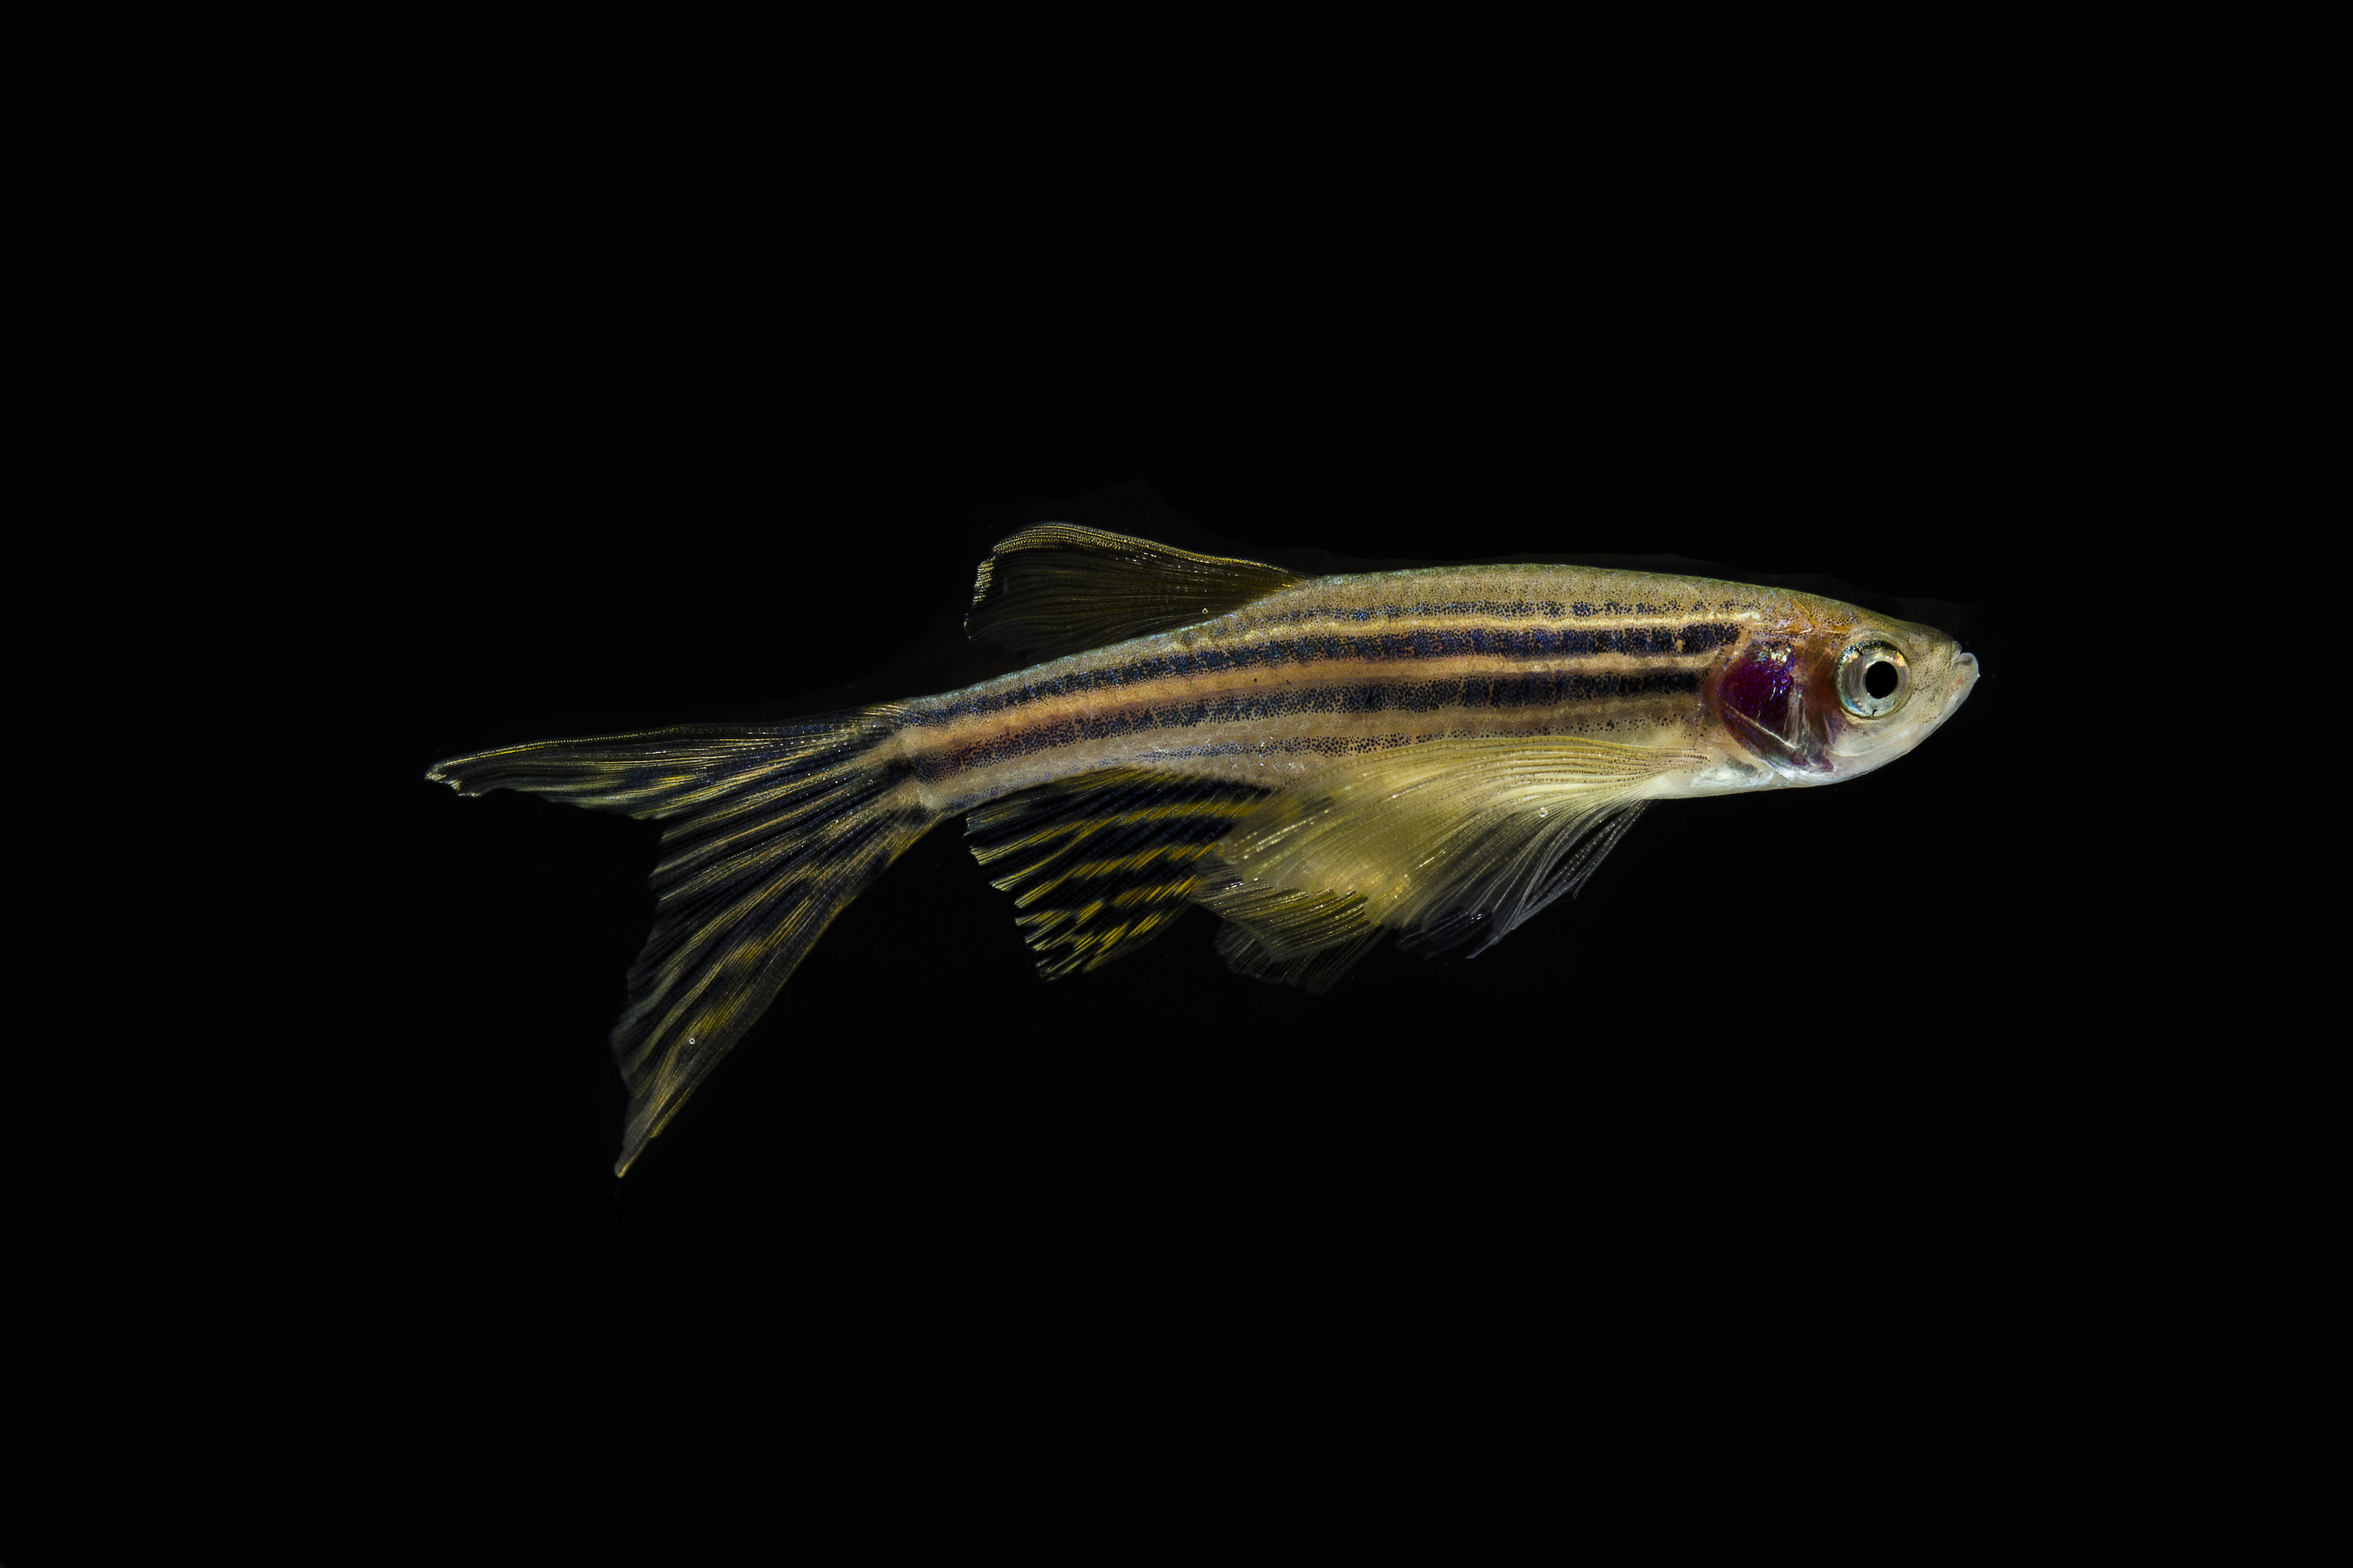 Zebrafish have a unique repair mechanism in their backbones that could provide insights into why human spinal discs degenerate with age.